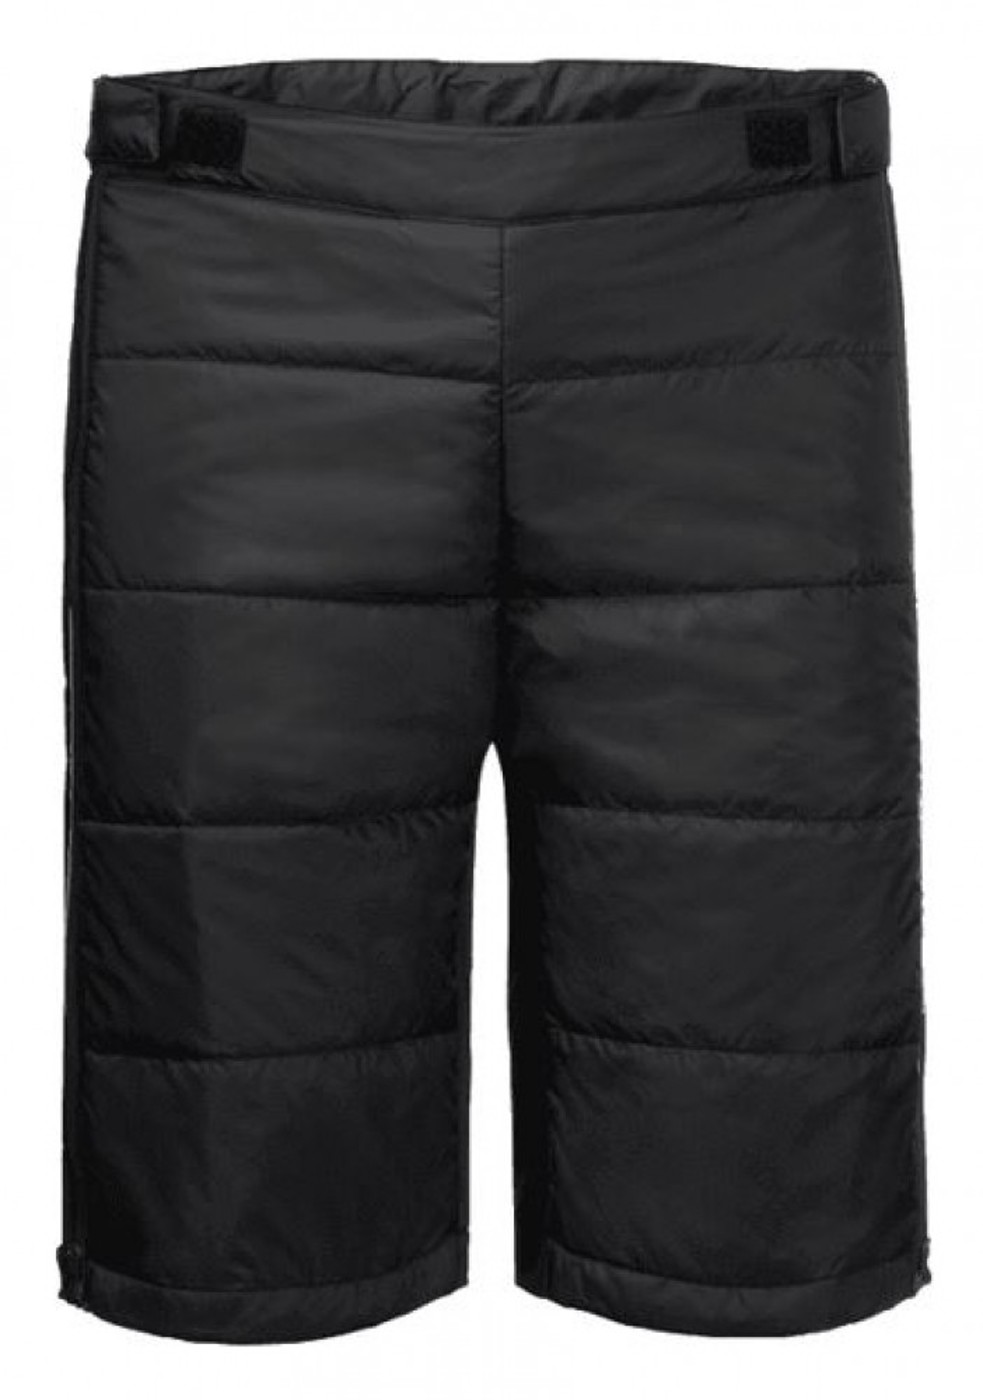 JACK WOLFSKIN ATMOSPHERE SHORTS - Herren